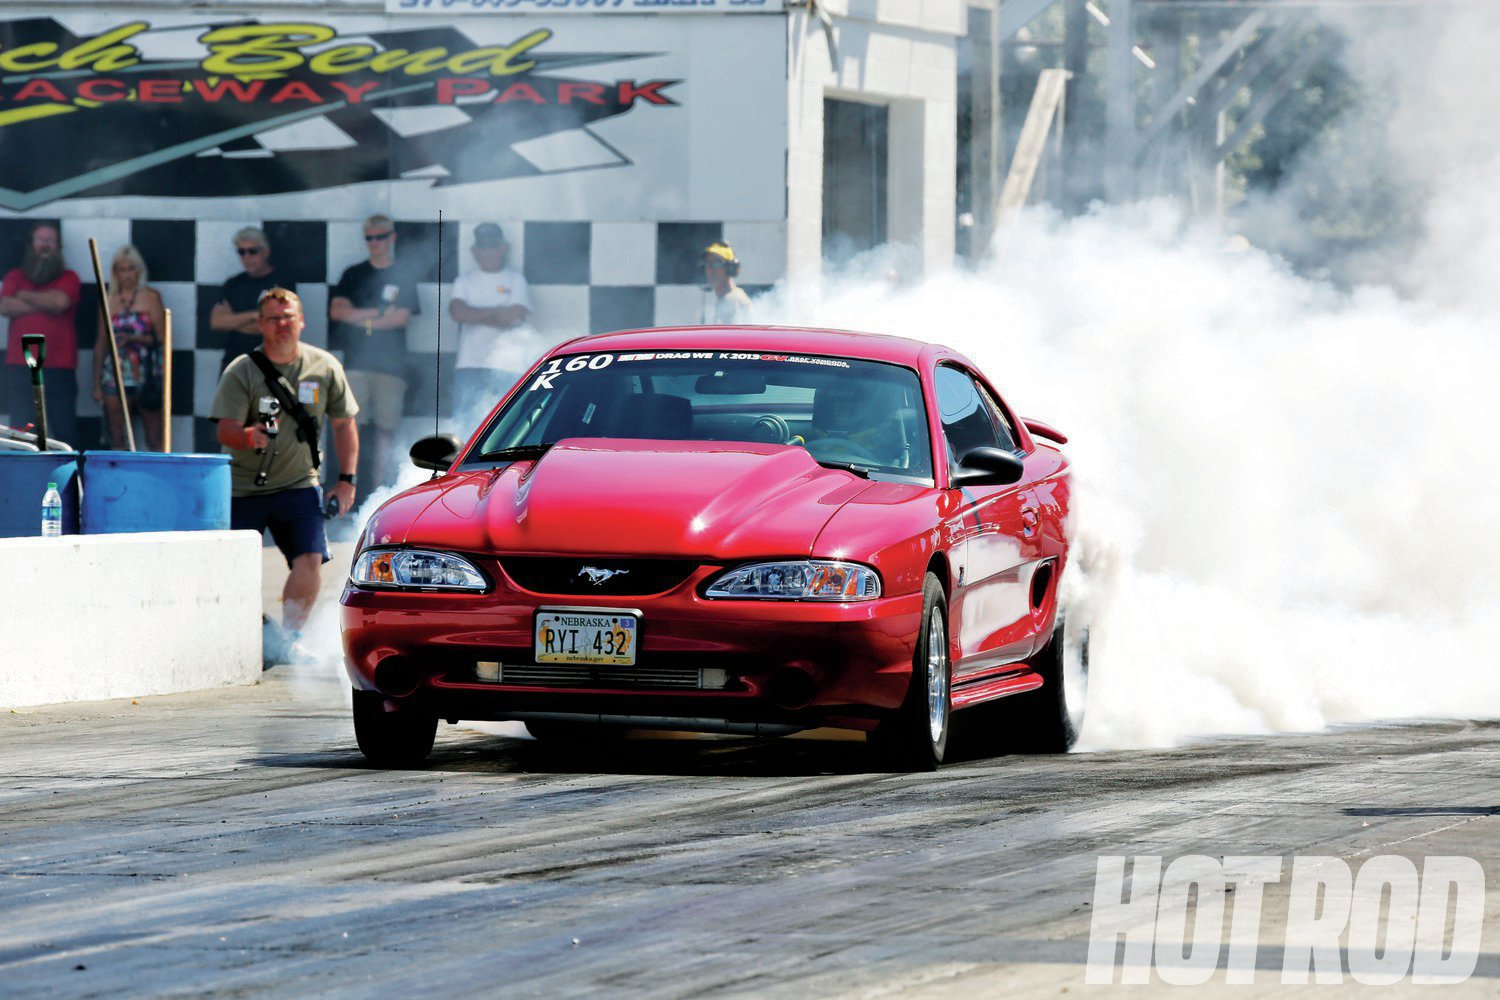 Jon's Mustang uses a Chevy 383 with twin Precision 67/66 billet-wheel turbos that he plumbed with stainless steel. The rest of the drivetrain is Rossler TH210 (which is a Turbo 400 with a 2.10:1 First gear), a Gear Vendors, and a spooled 9-inch with 3.50 gears.